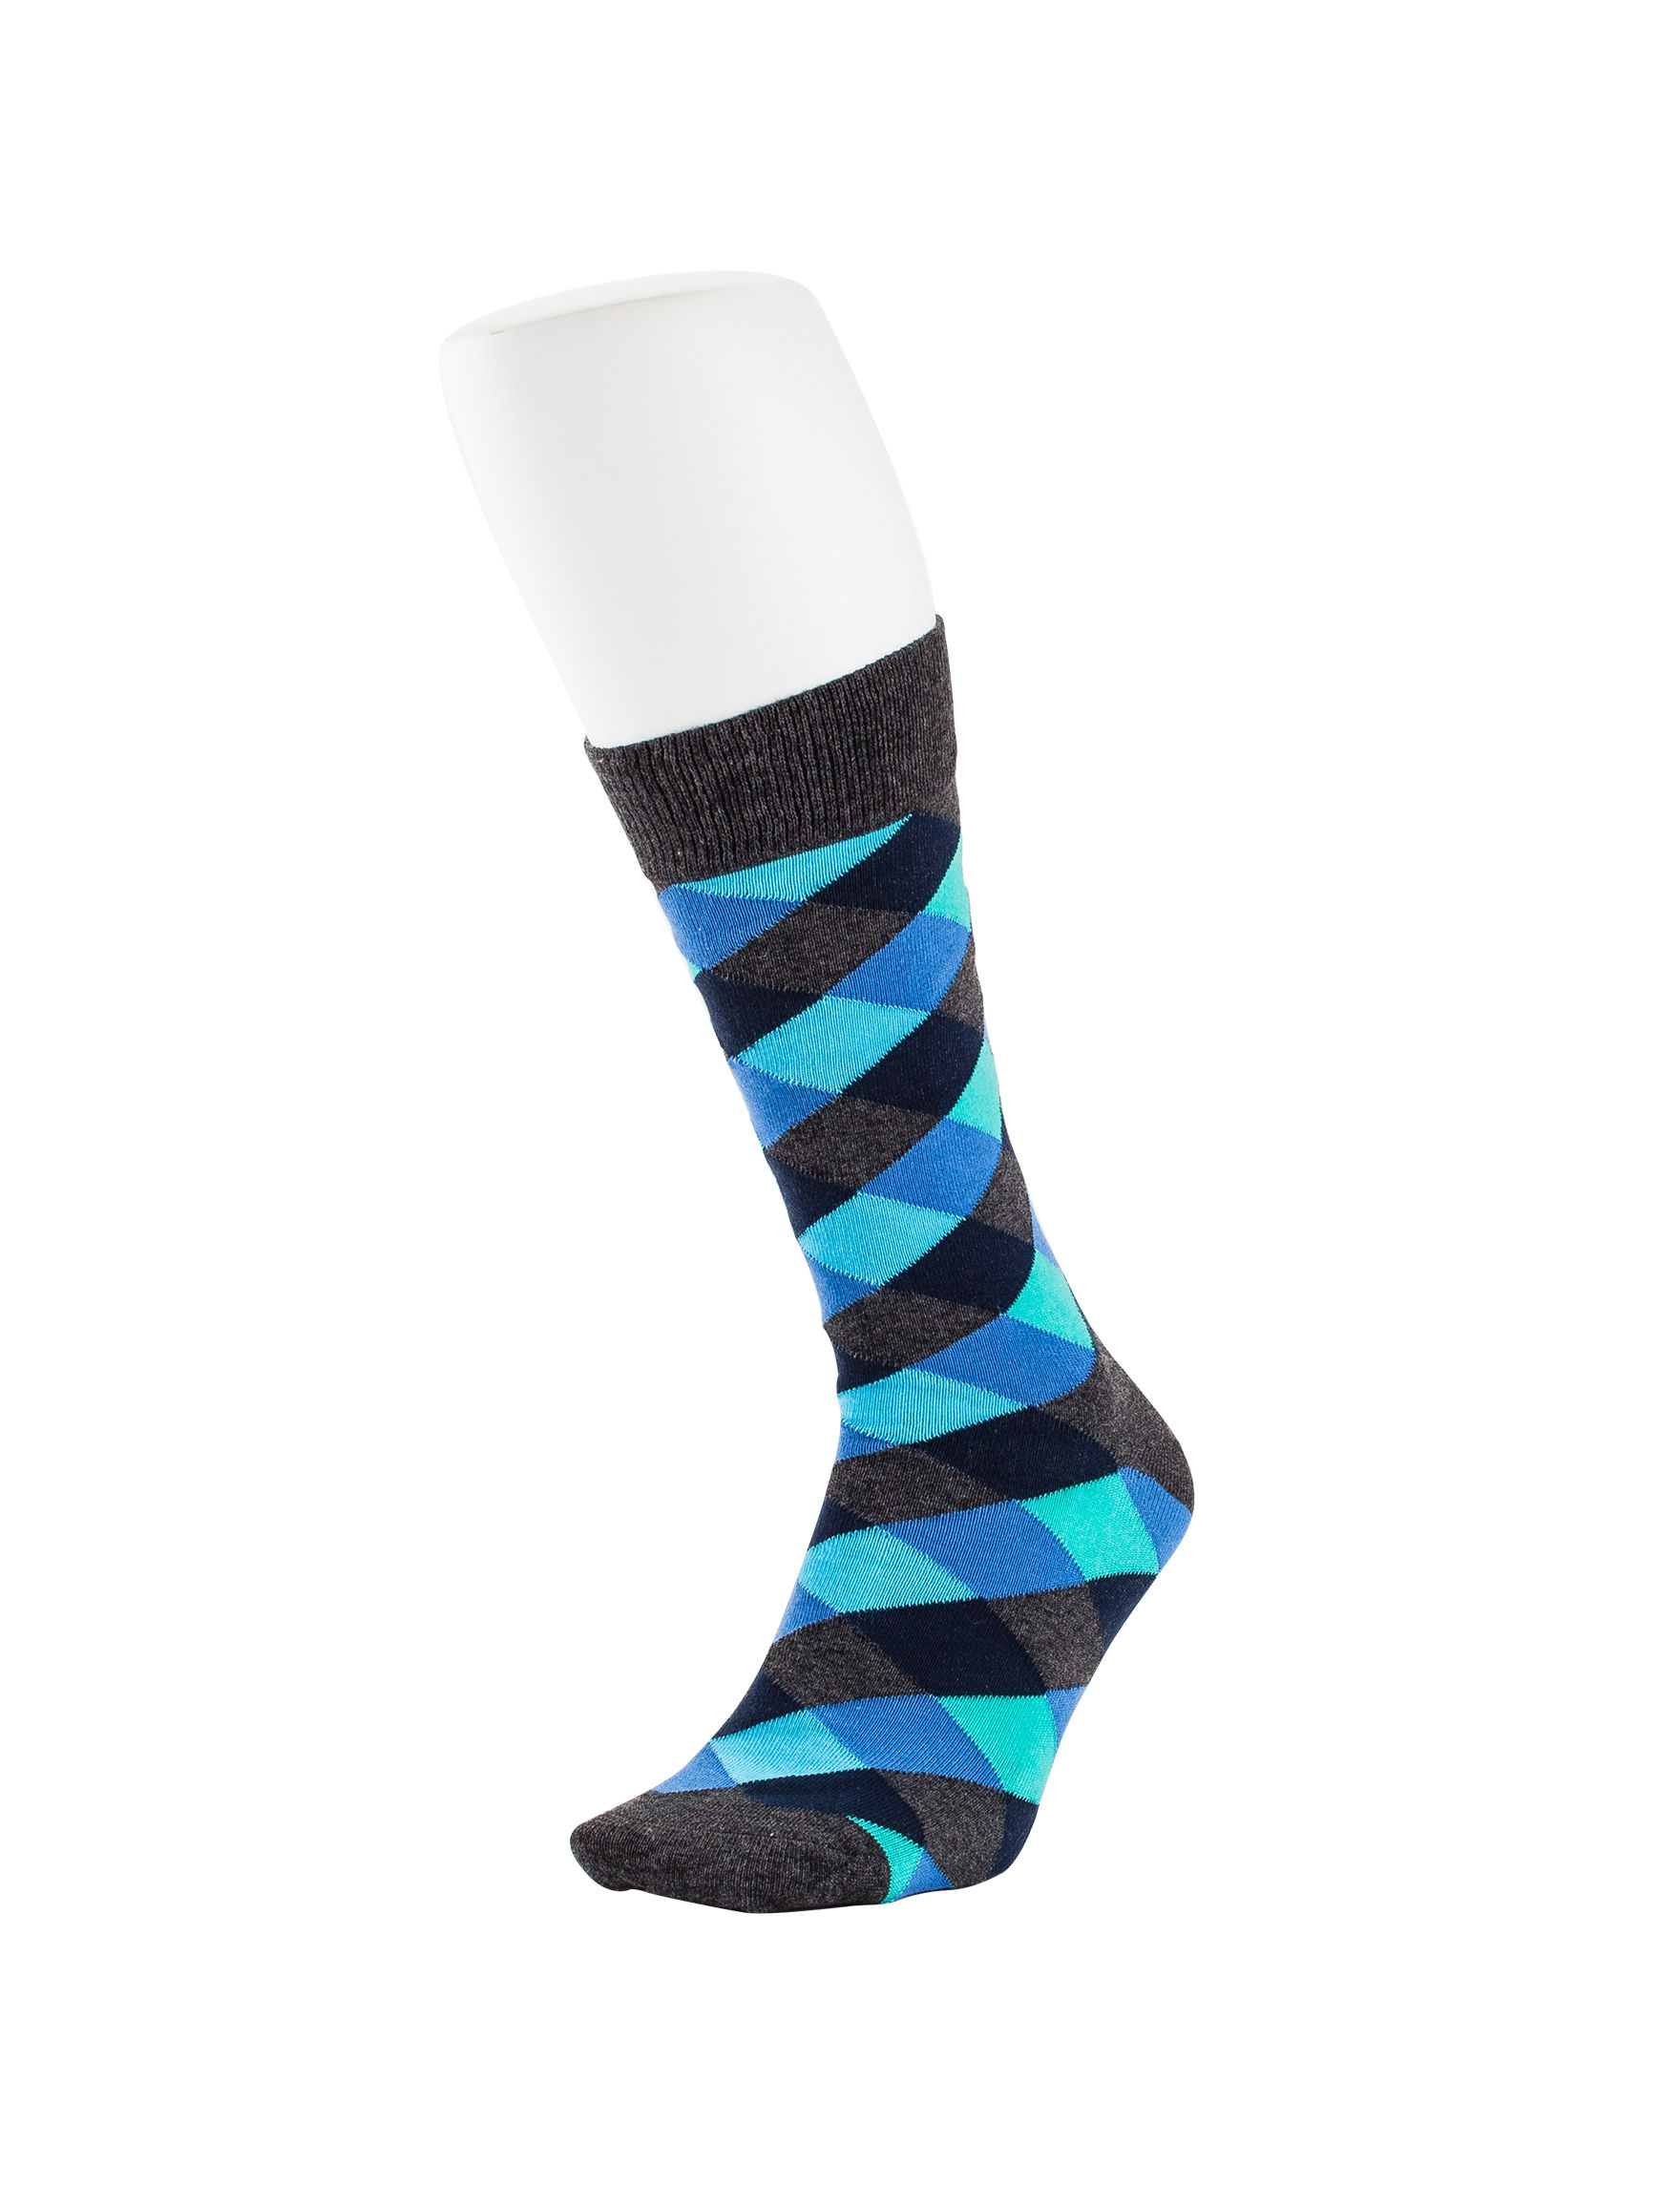 HS by Happy Socks Grey / Blue Socks